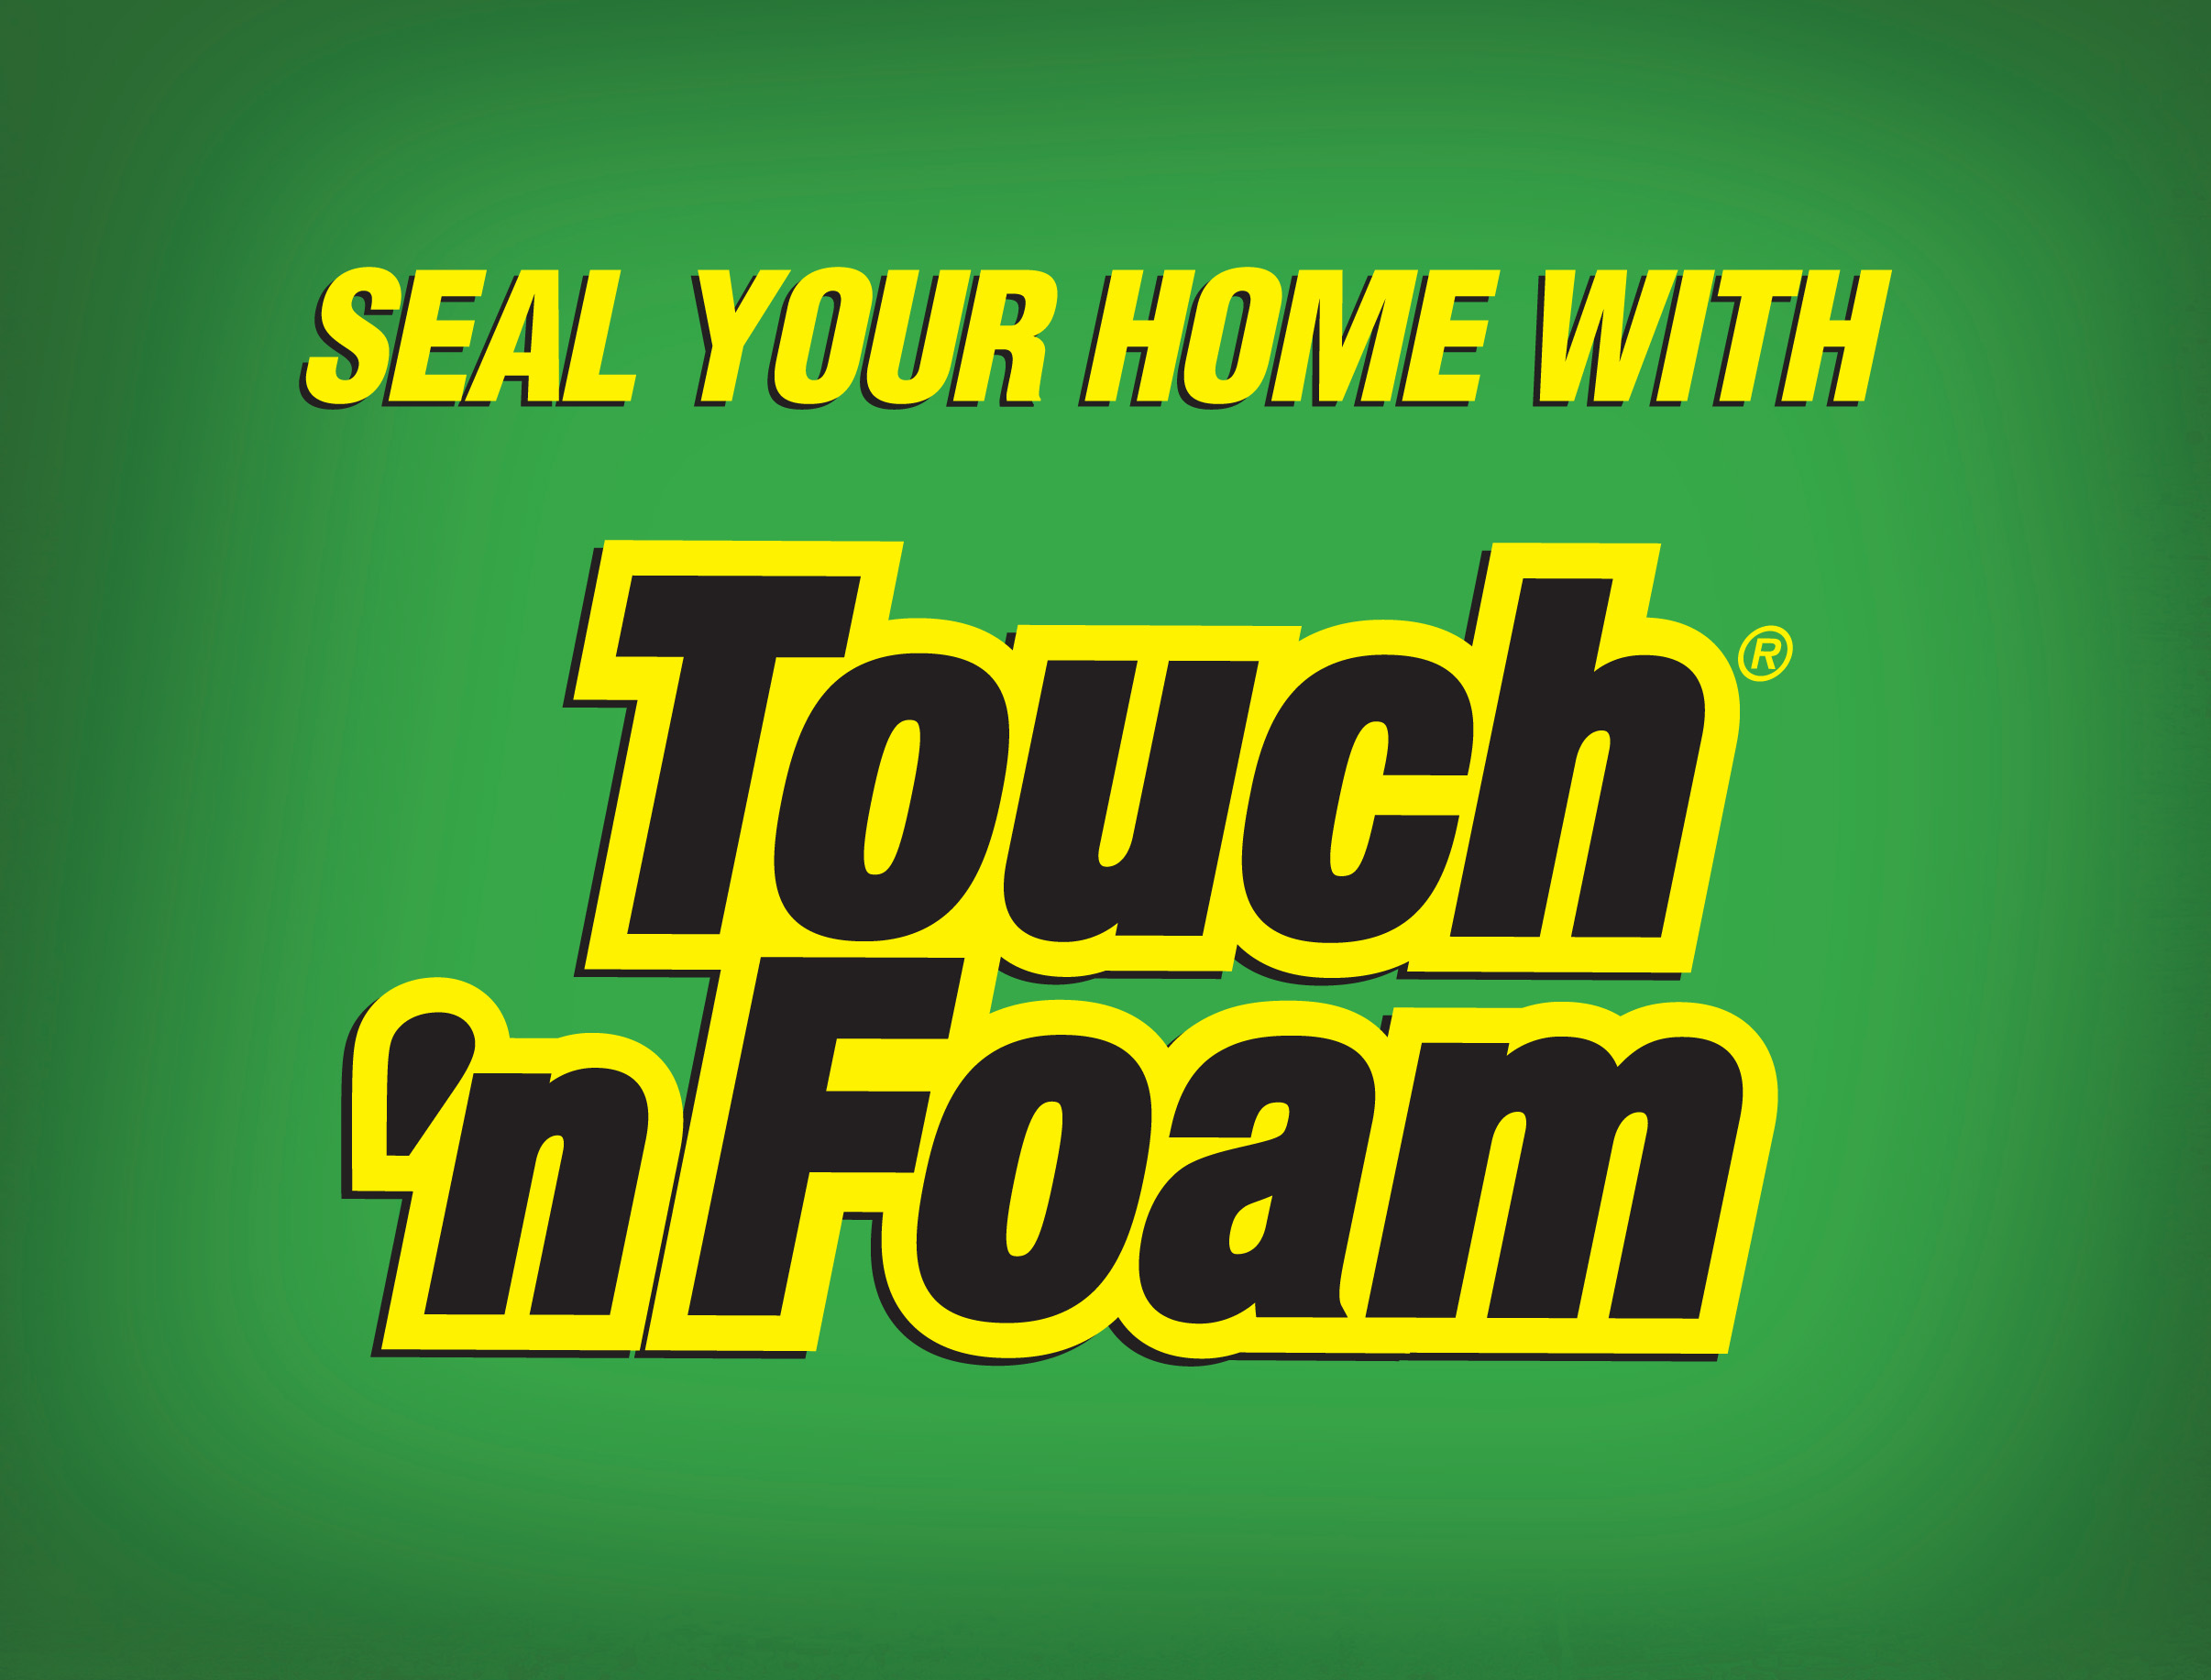 Touch N Foam Announces Tips To Air Seal Your Home With